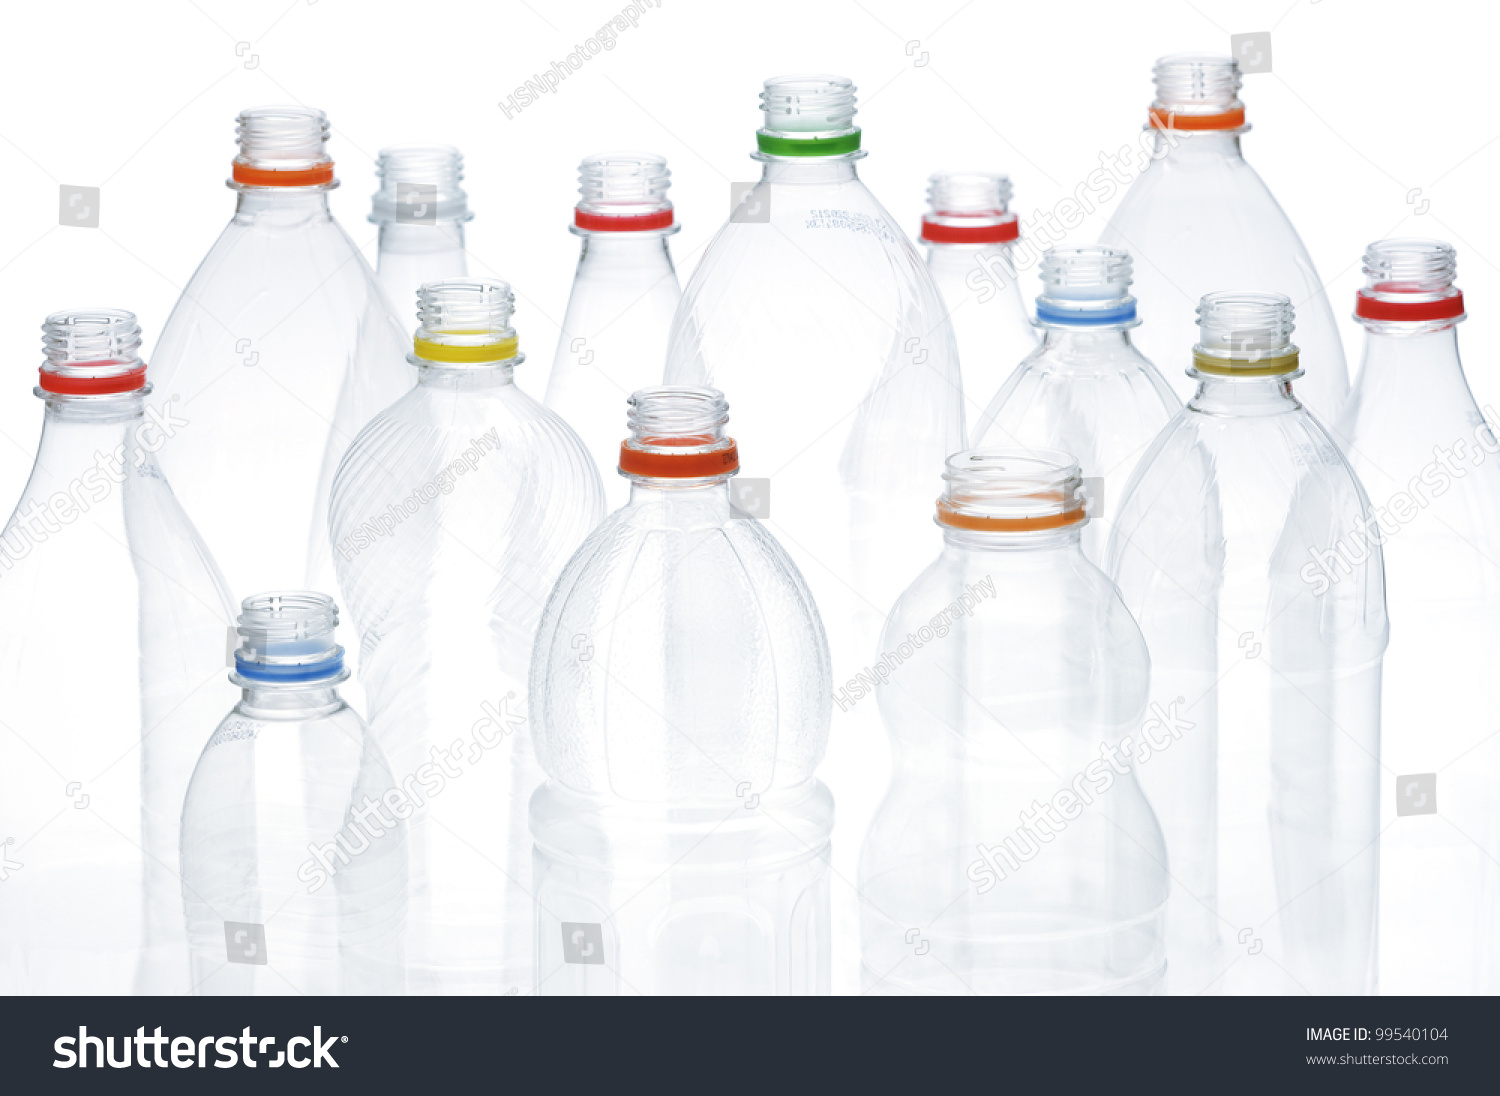 Empty plastic drinking bottles ready recycling stock photo for What to do with empty plastic bottles